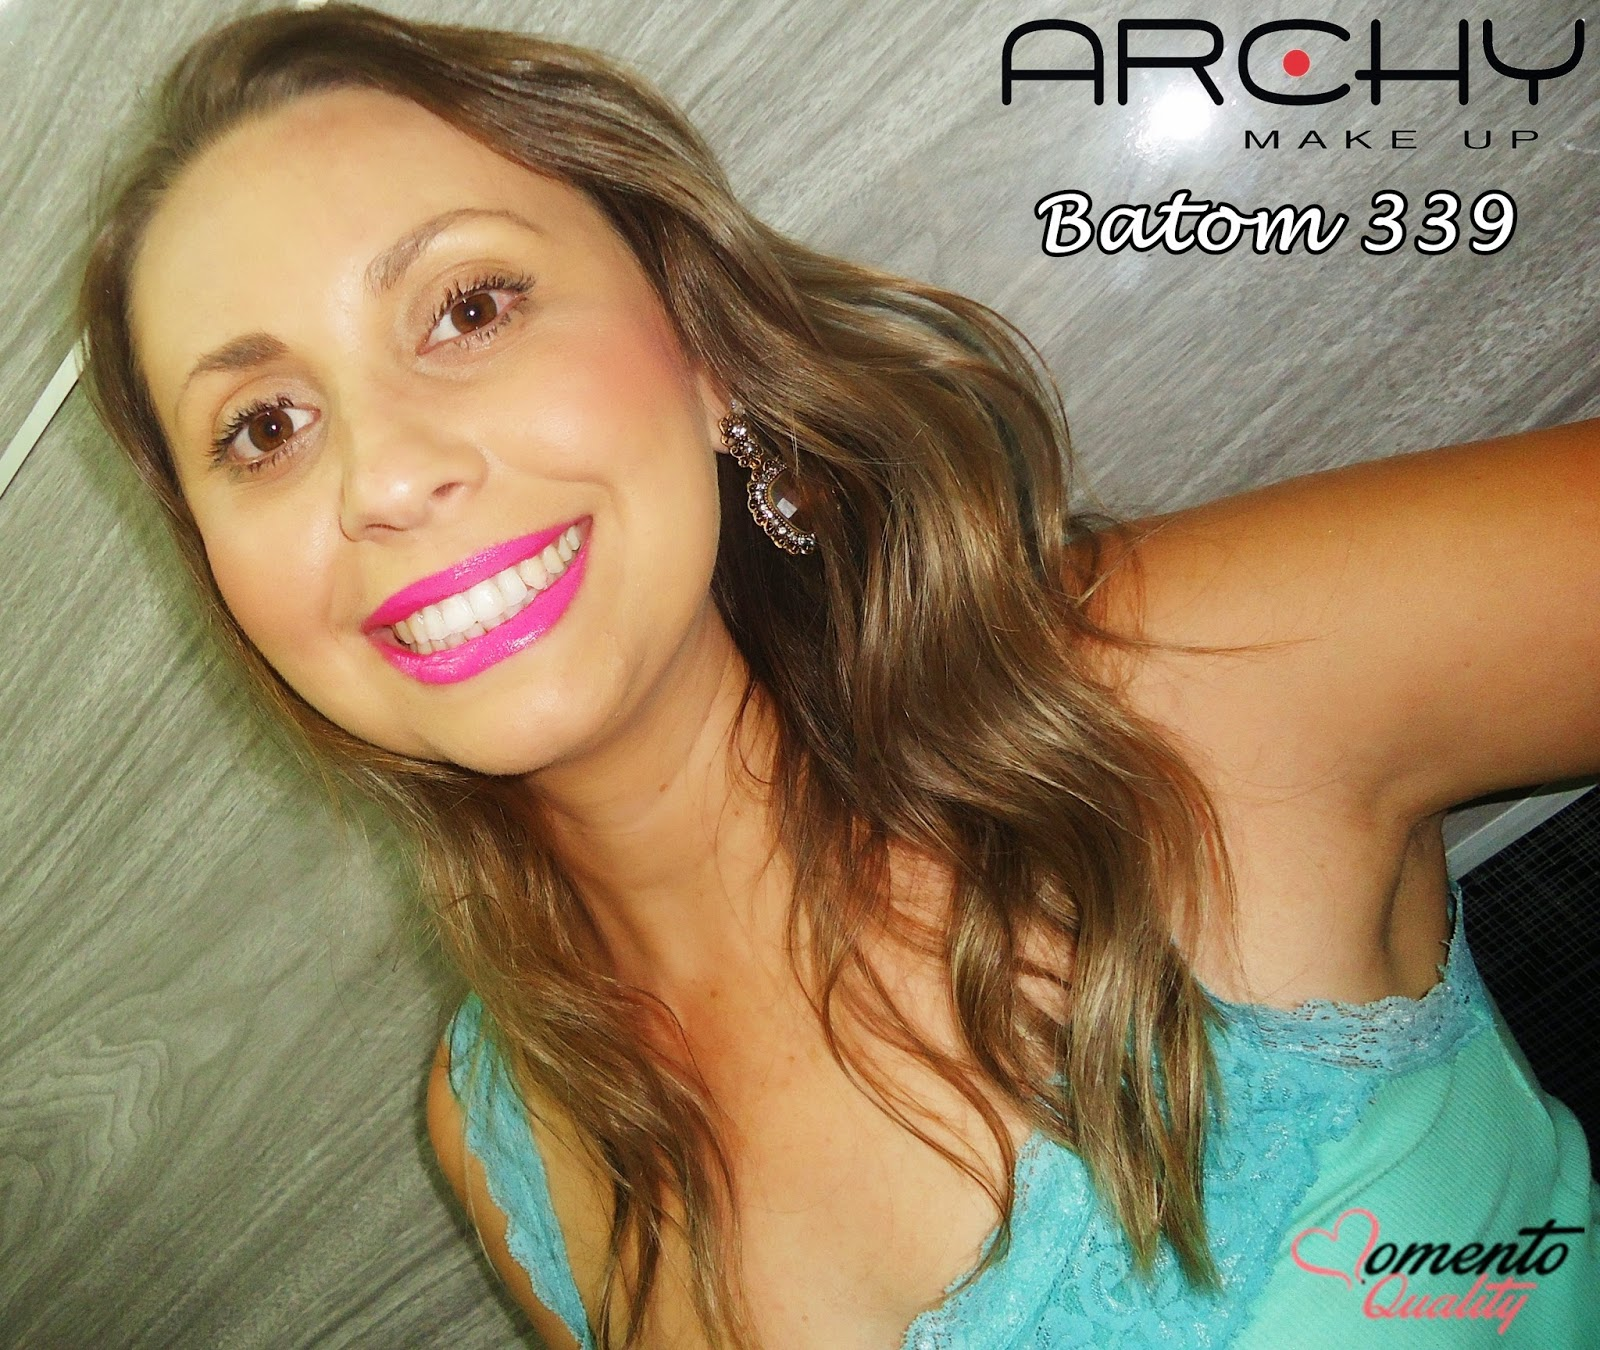 Batom Archy Make Up Batom 339 Momento Quality